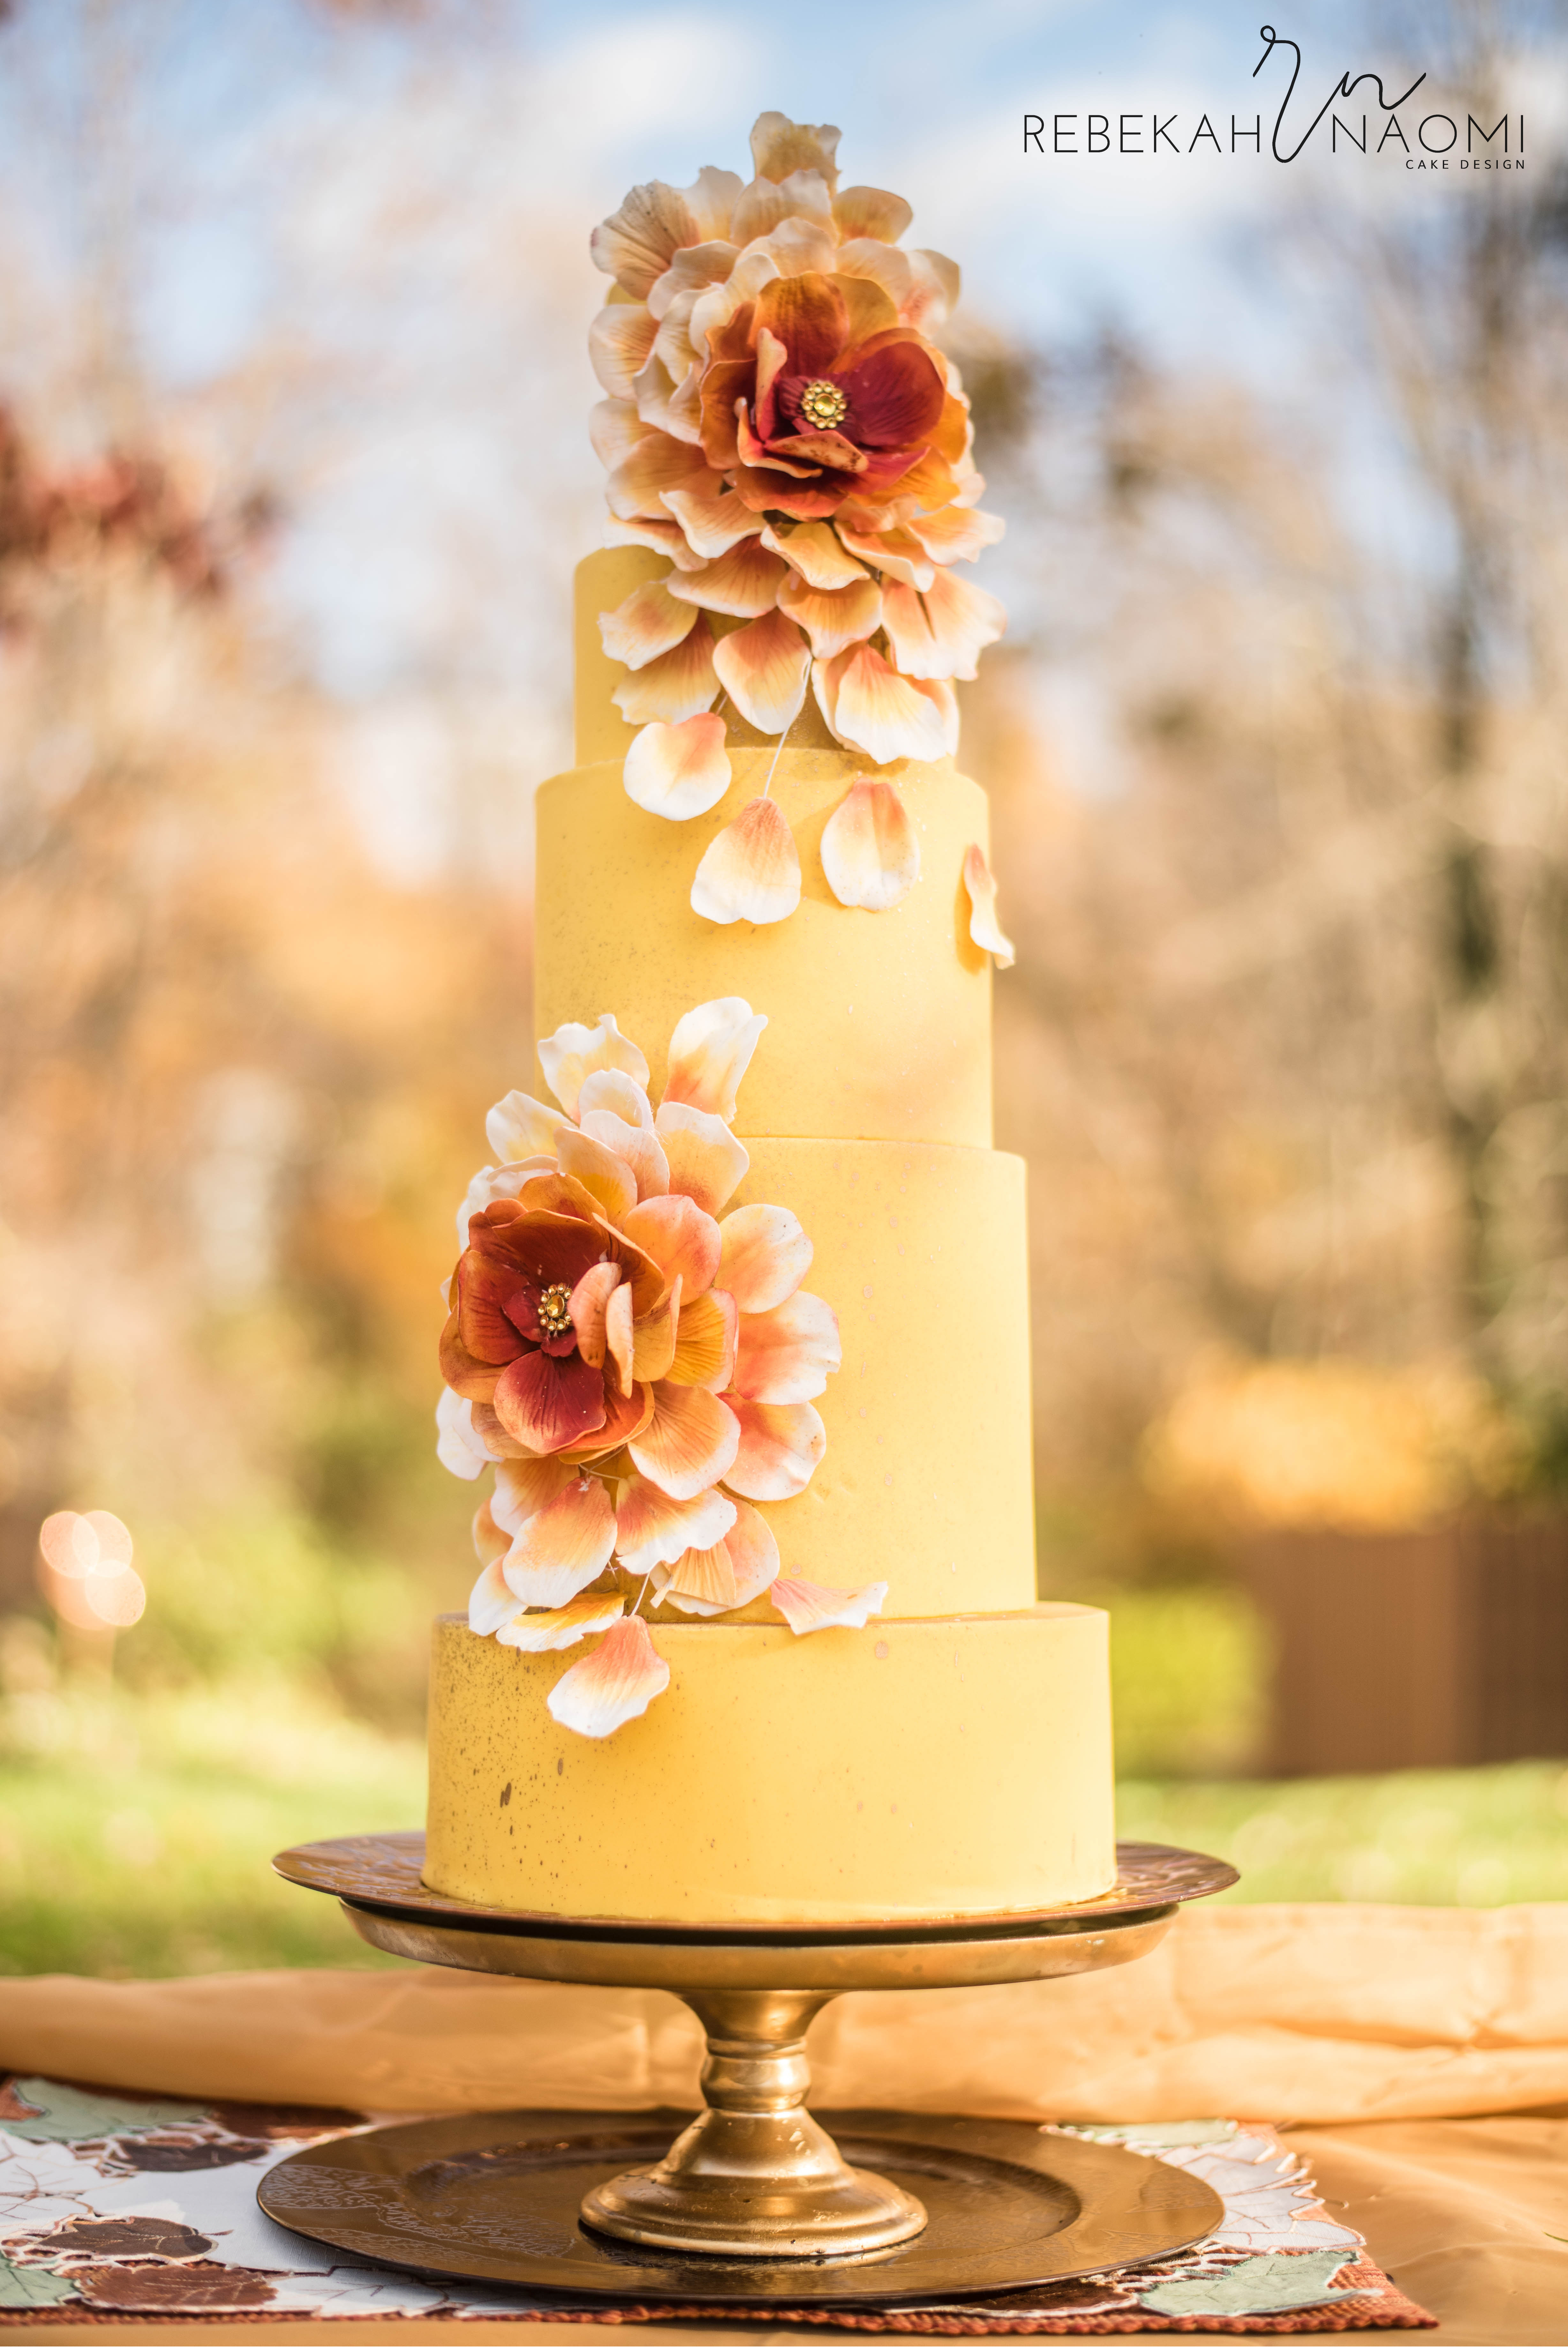 All pastel yellow wedding cake